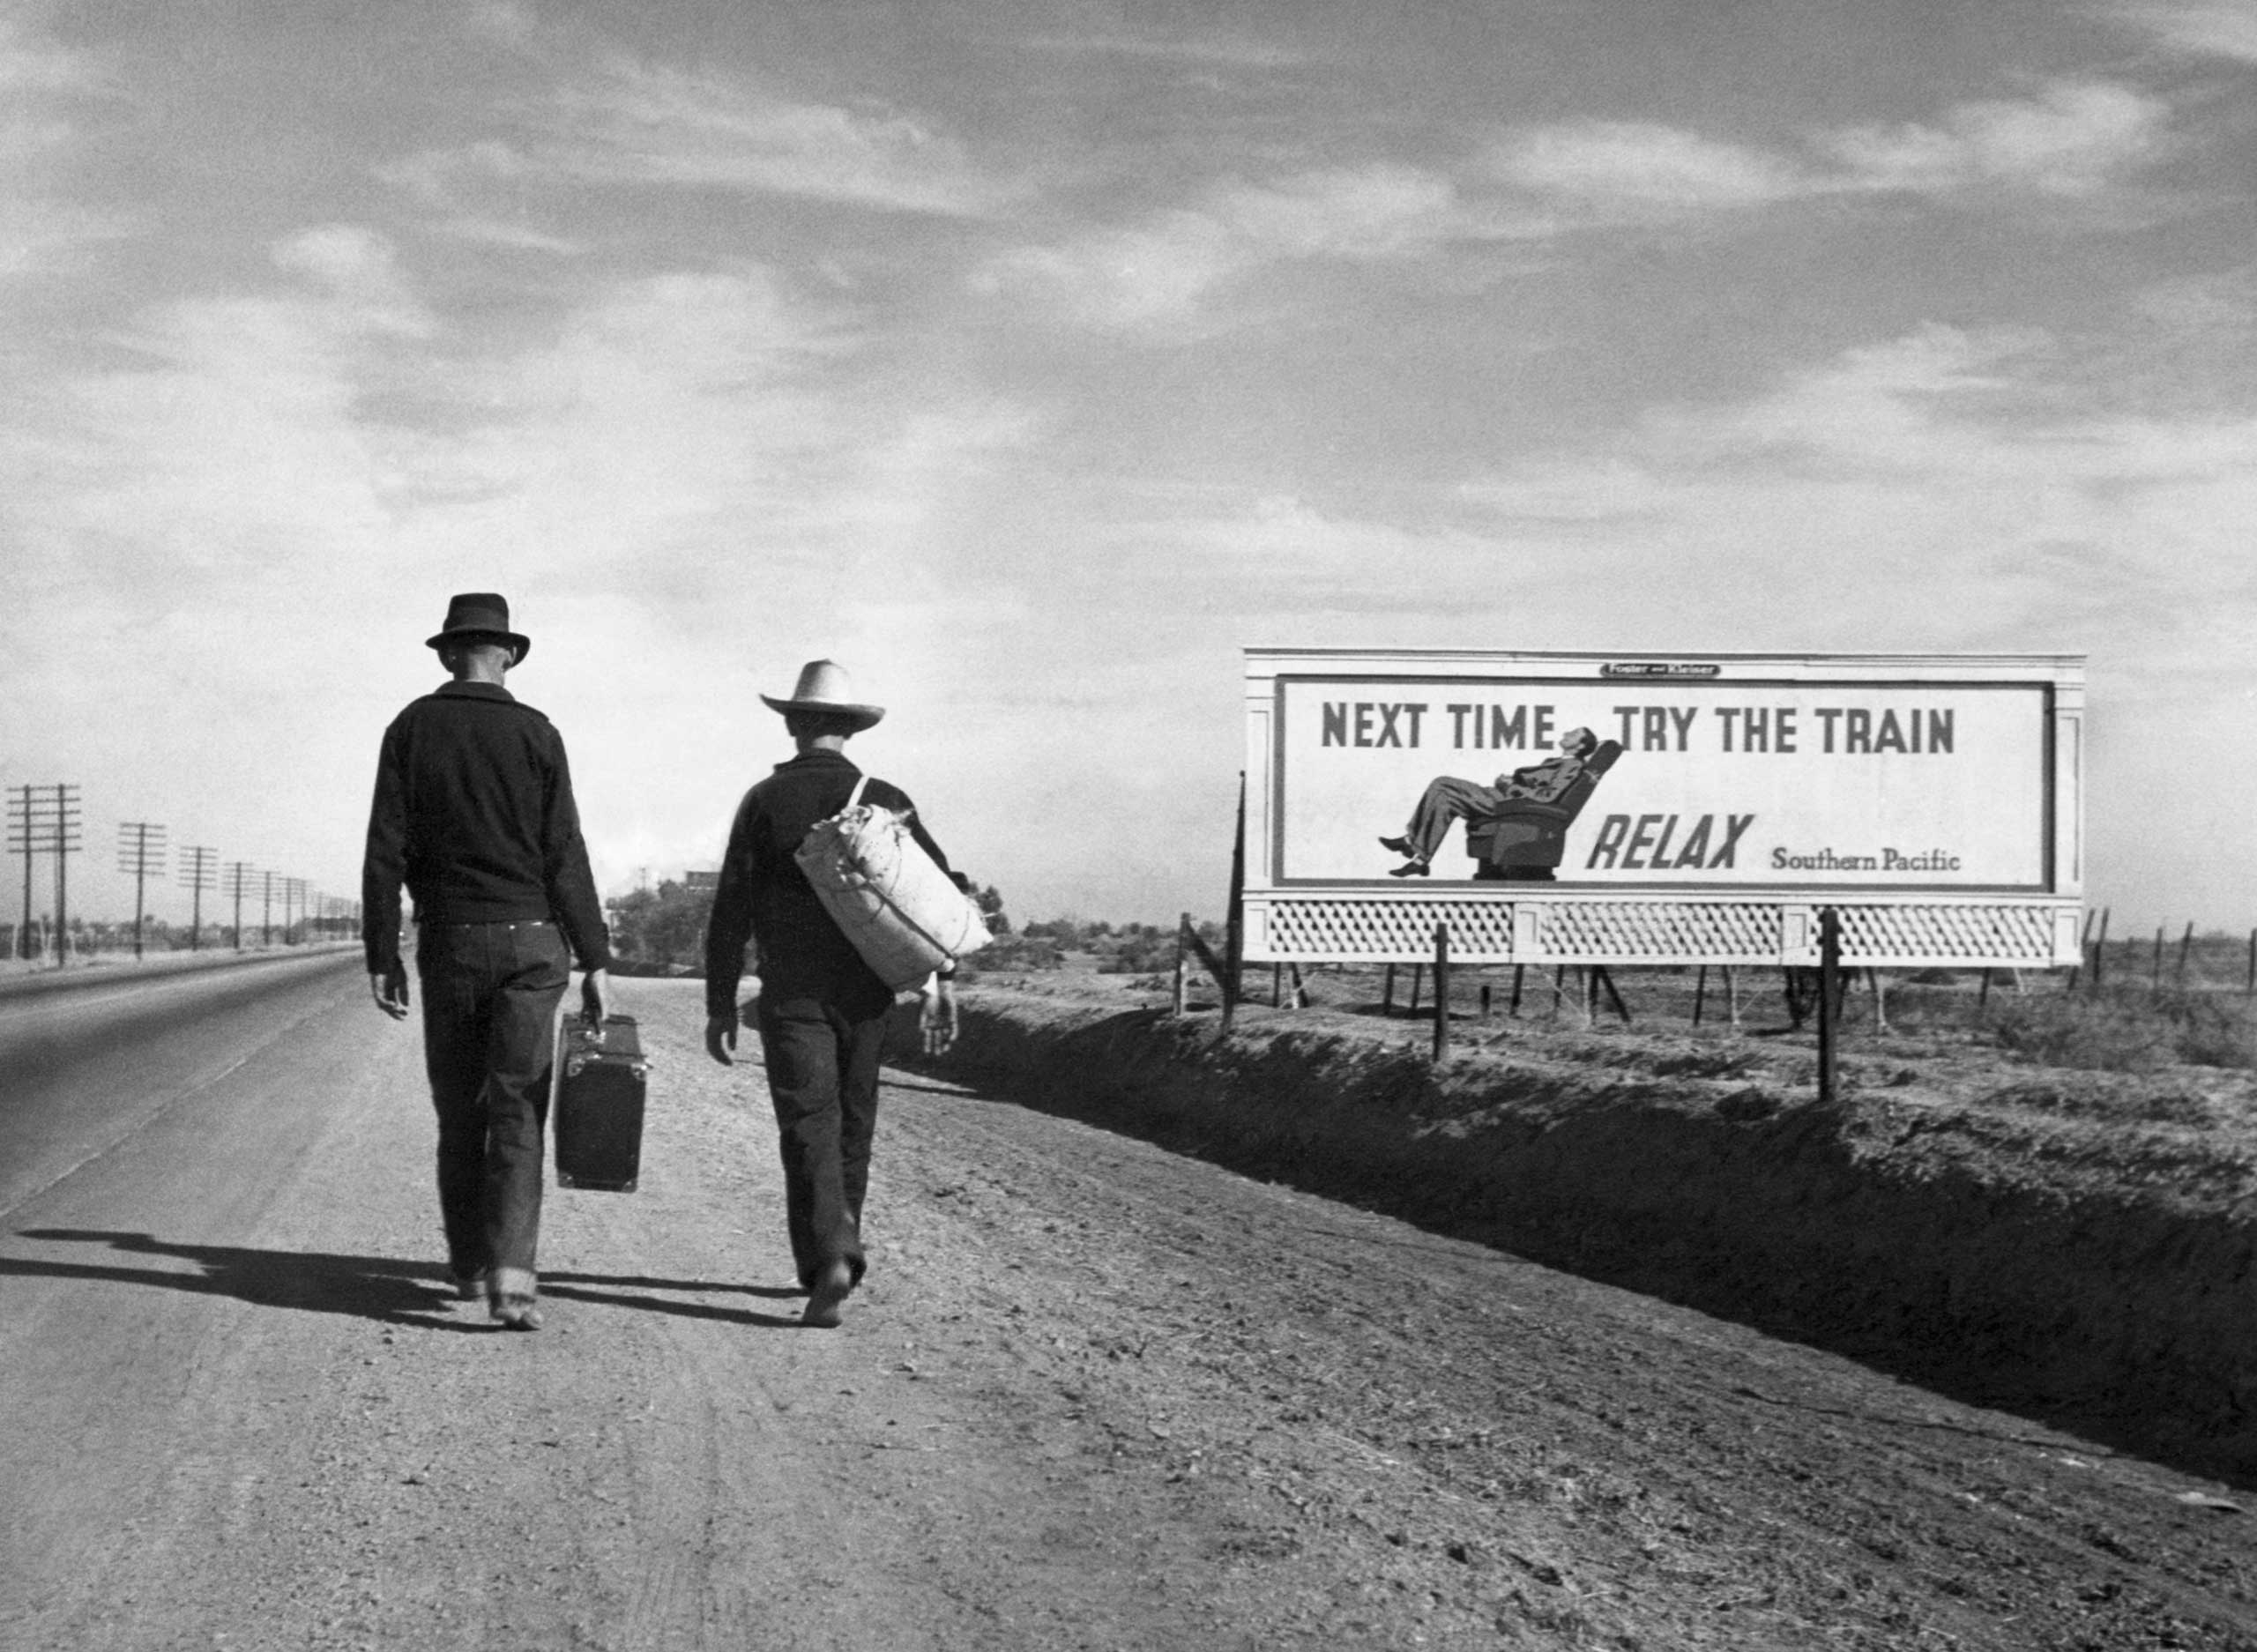 Two Dust Bowl refugees walk along a highway towards Los Angeles. passing by a billboard imploring them  Next Time Try the Train - Relax . March 1937.